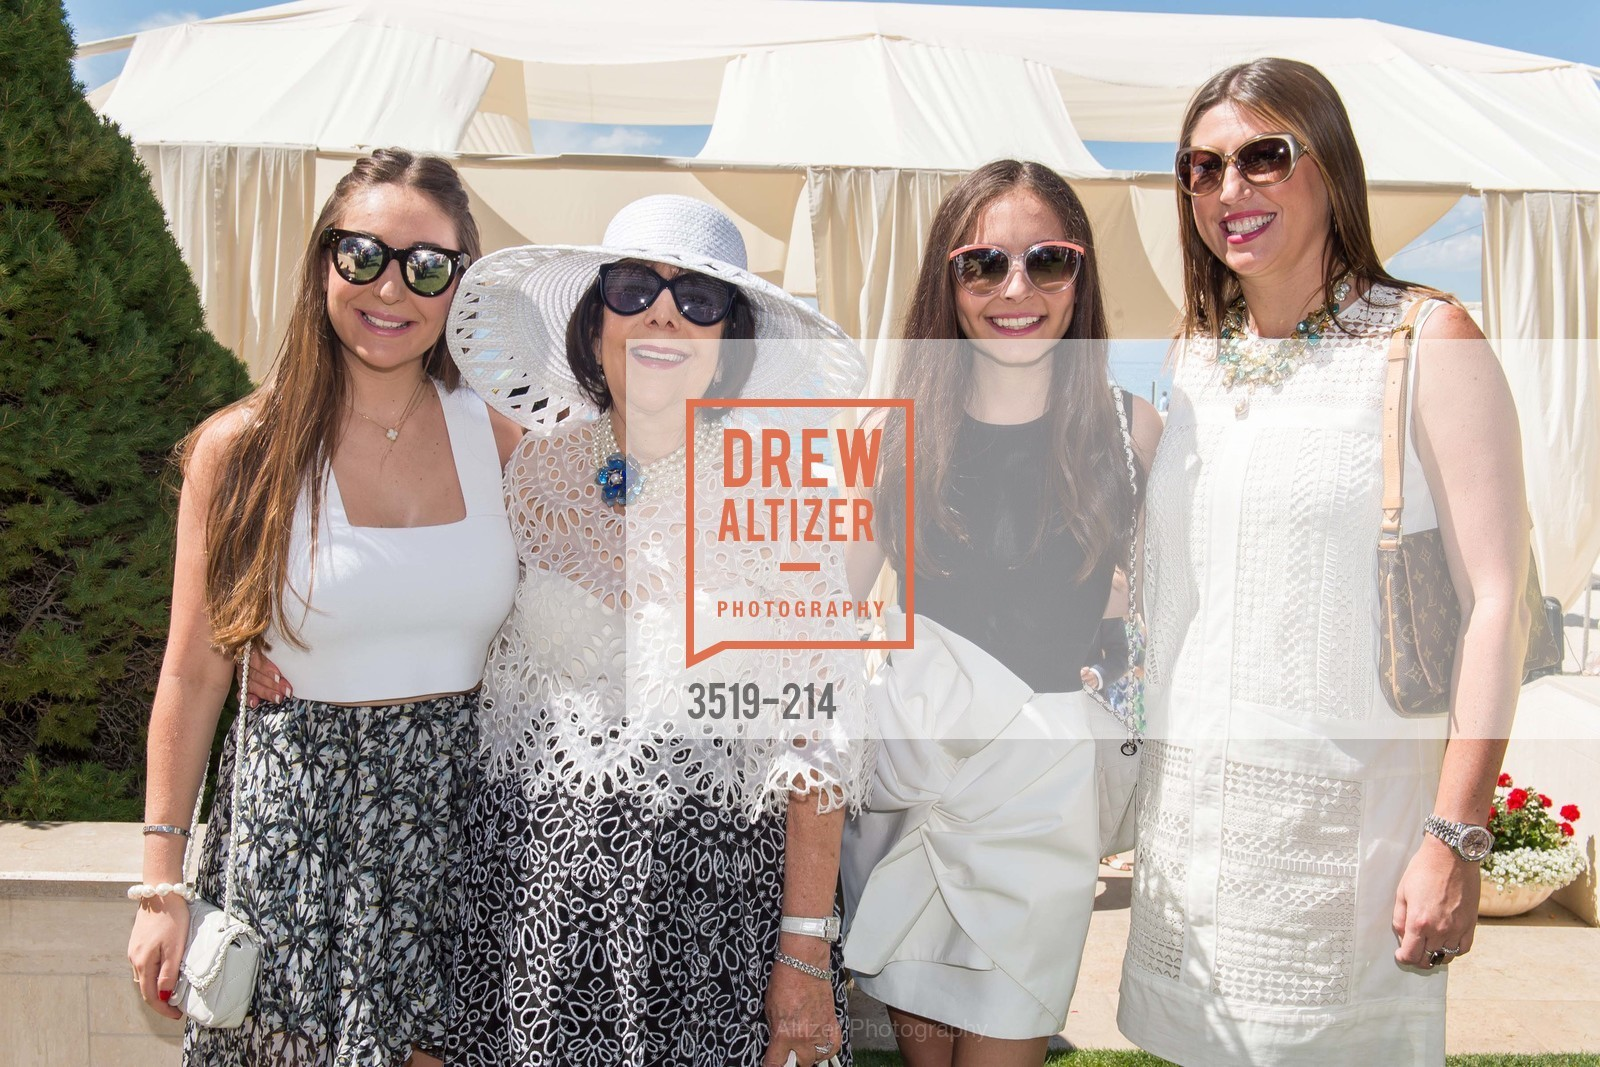 Jenni Gellman, Tyril Seligman, Sydney Seligman, Michelle Jensen, Saks Fifth Avenue and The League to Save Lake Tahoe Present Fashion on the Lake, Private Residence, August 1st, 2015,Drew Altizer, Drew Altizer Photography, full-service agency, private events, San Francisco photographer, photographer california